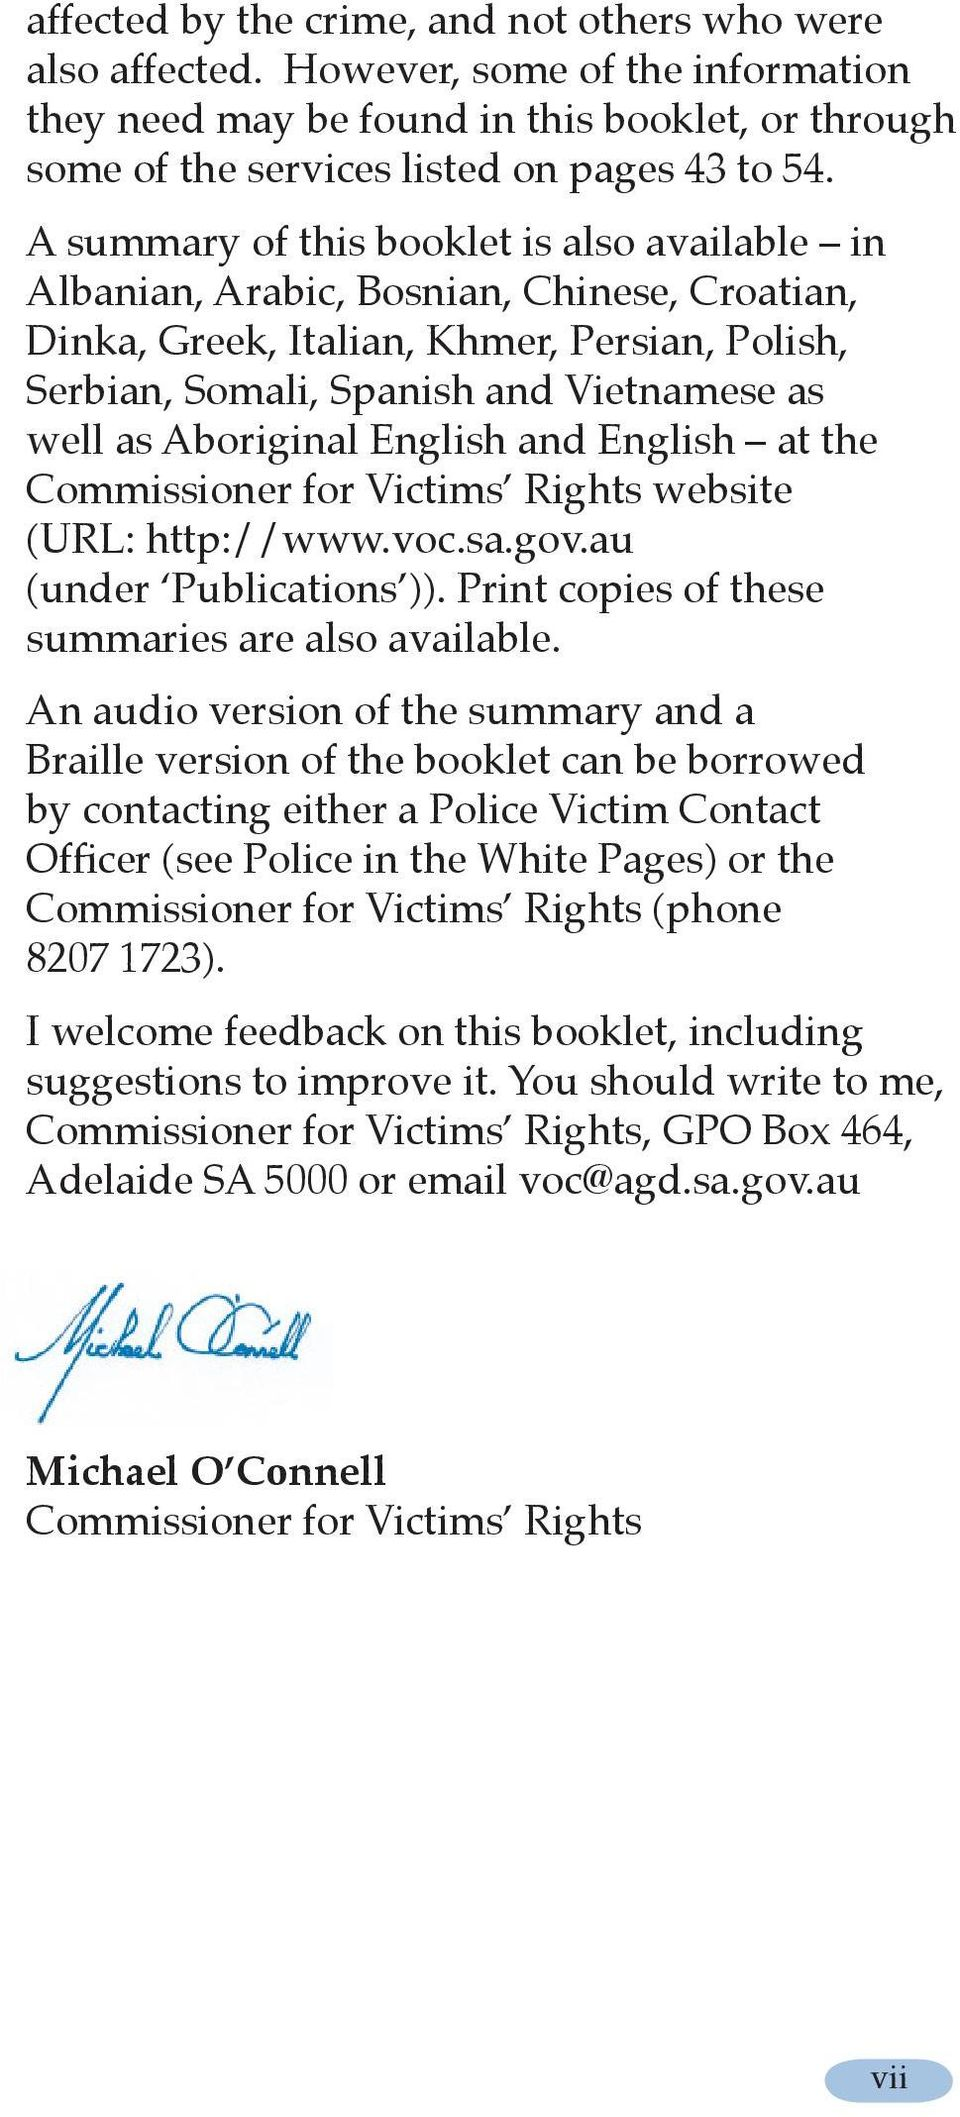 Aboriginal English and English at the Commissioner for Victims Rights website (URL: http://www.voc.sa.gov.au (under Publications )). Print copies of these summaries are also available.